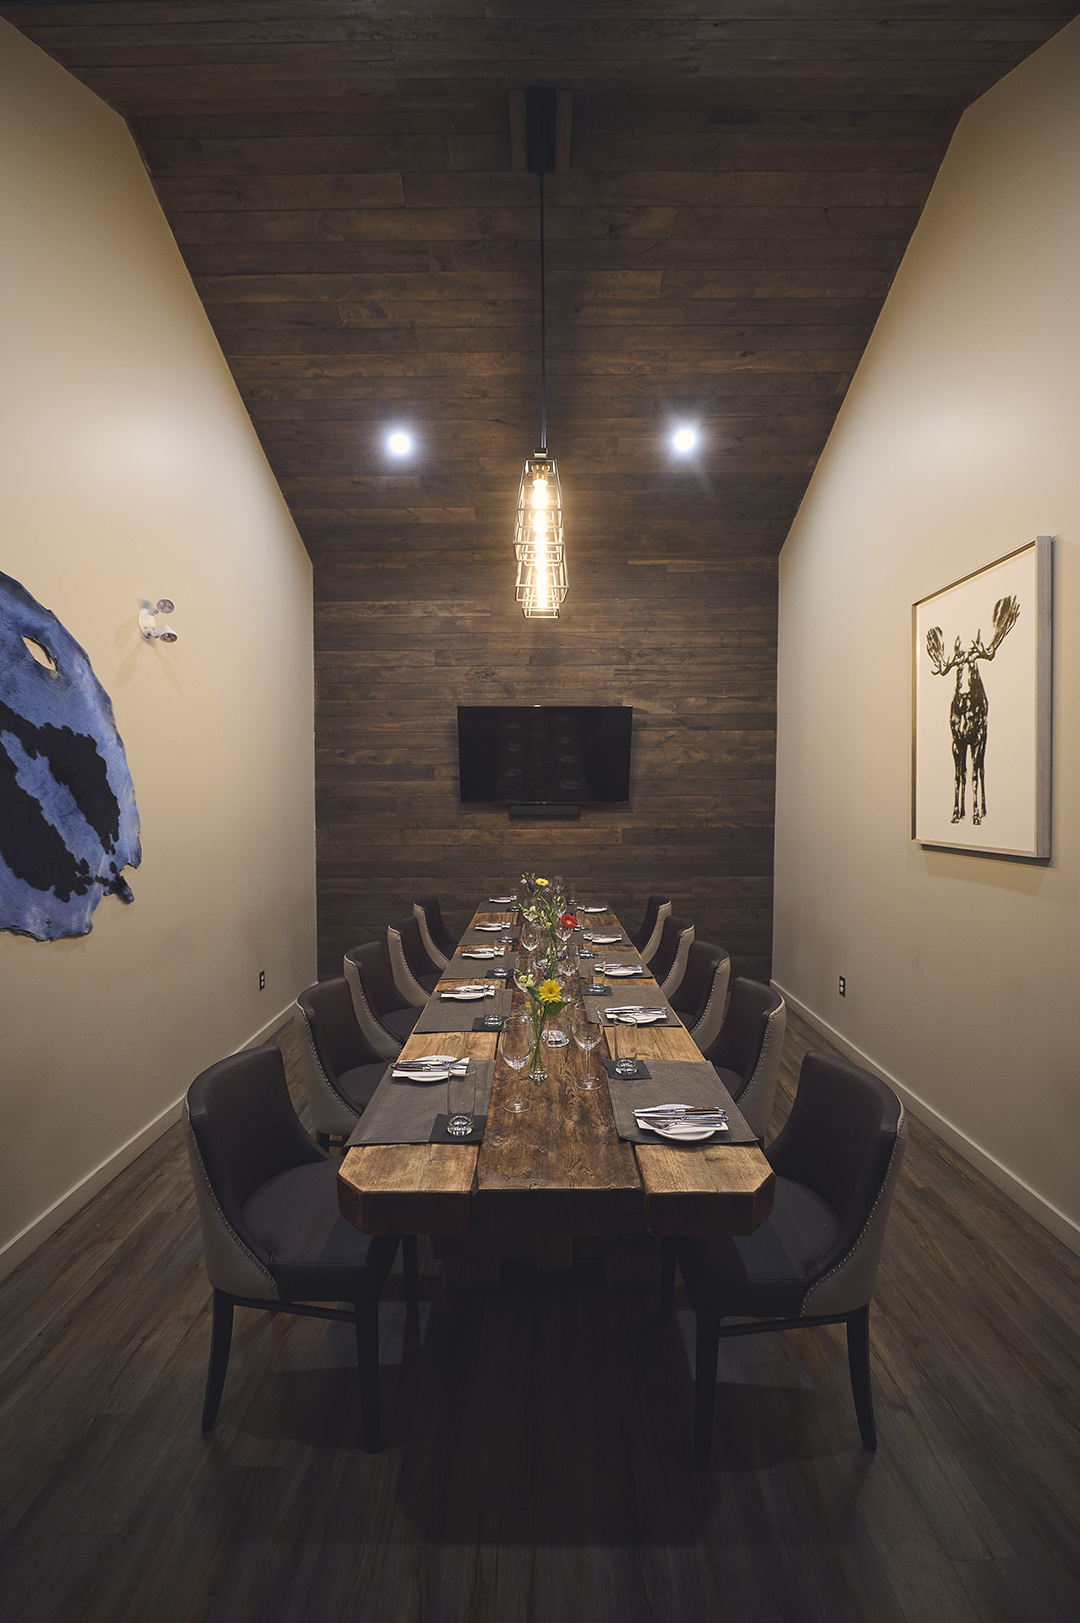 A photo of the private dining room, showing a hand made cedar table with 6 chairs on each side. On the left wall is a seal pelt dyed blue; on the right wall is an art print of a moose.